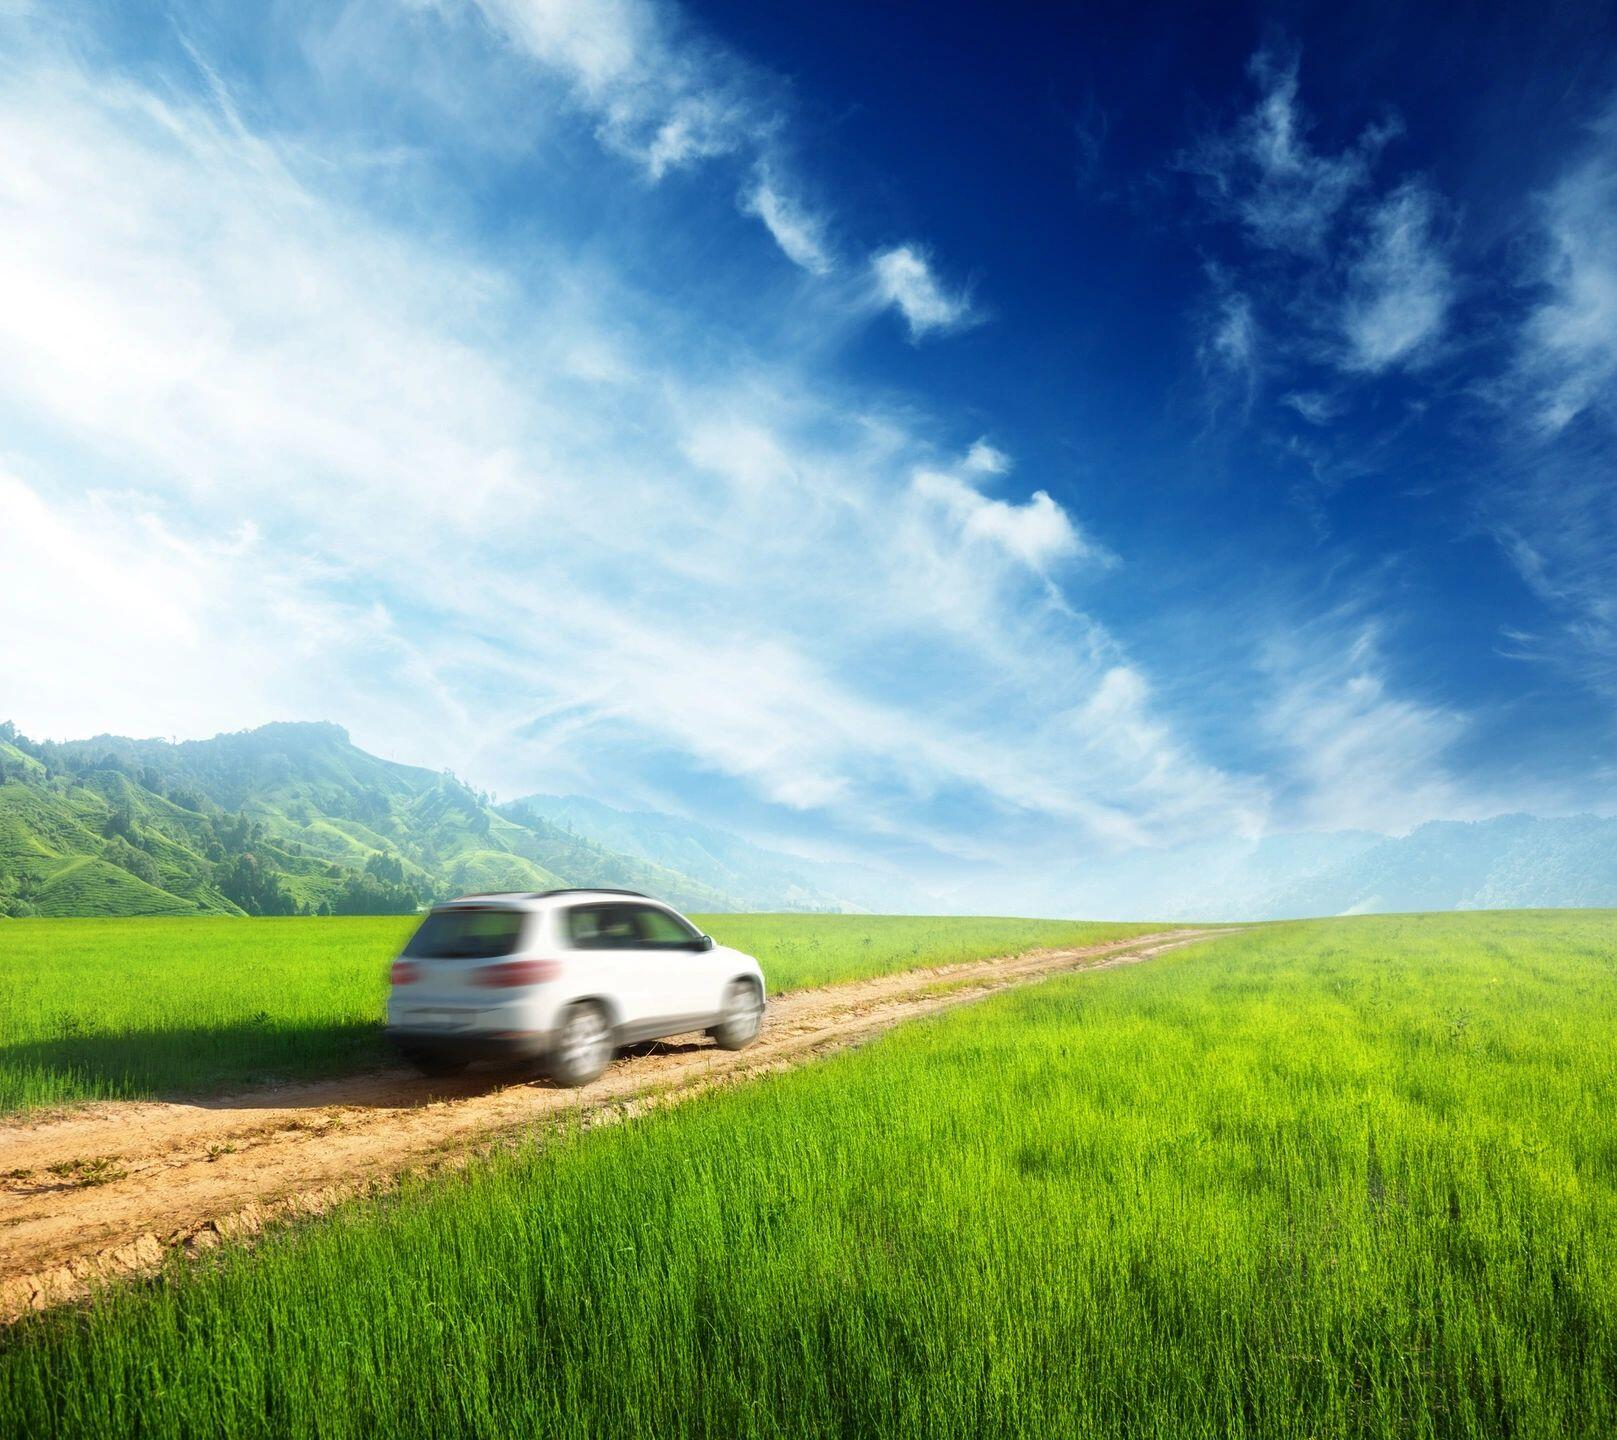 Summer Travel: How Can I Prepare My Car? What Apps Are Useful for Summer Travel?